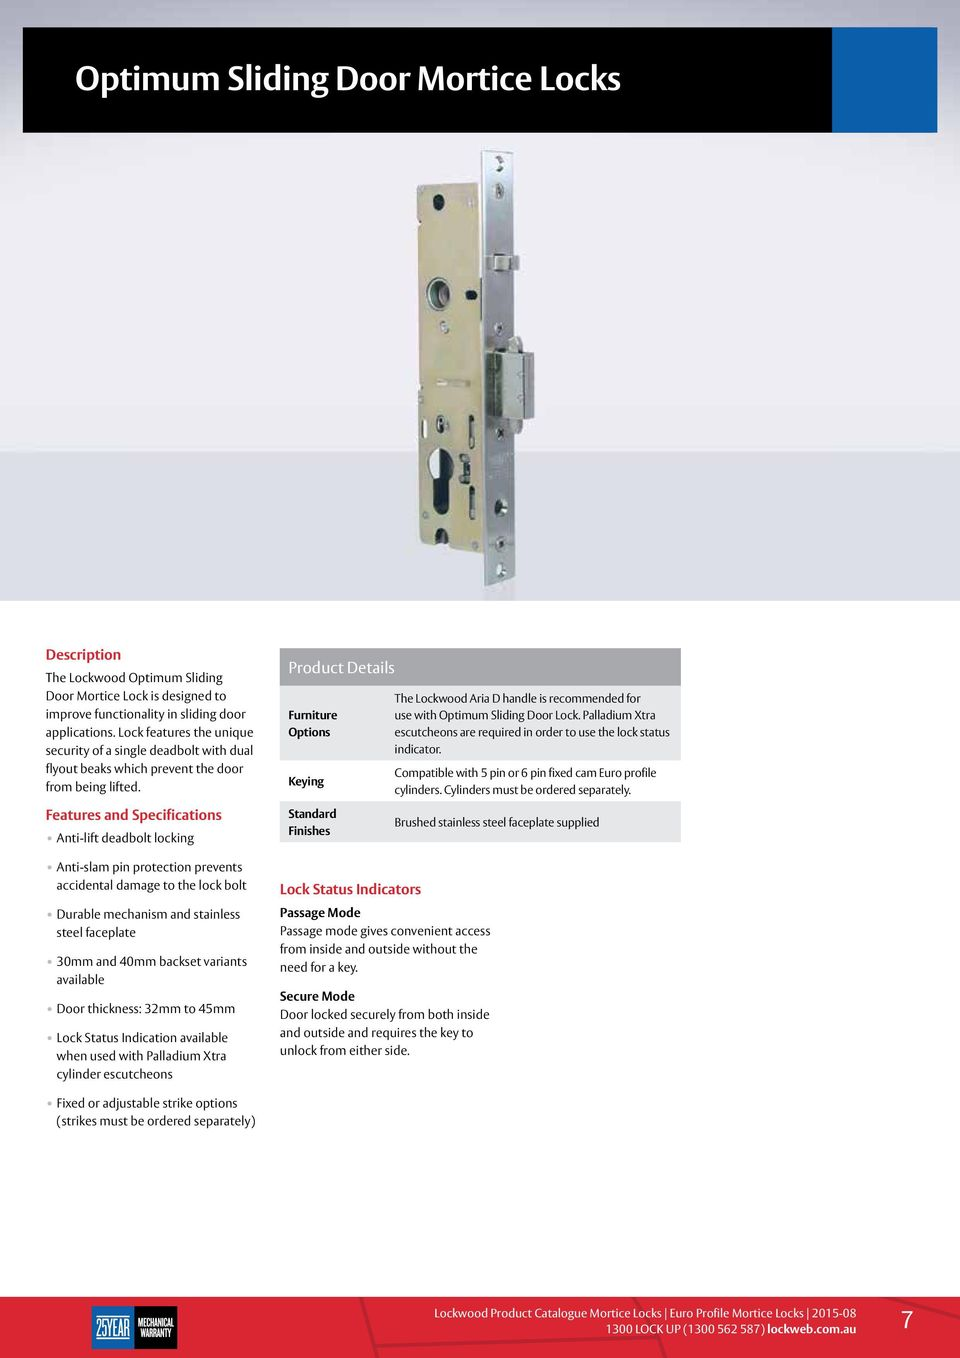 Features and Specifications Anti-lift deadbolt locking Anti-slam pin protection prevents accidental damage to the lock bolt Durable mechanism and stainless steel faceplate 30mm and 40mm backset